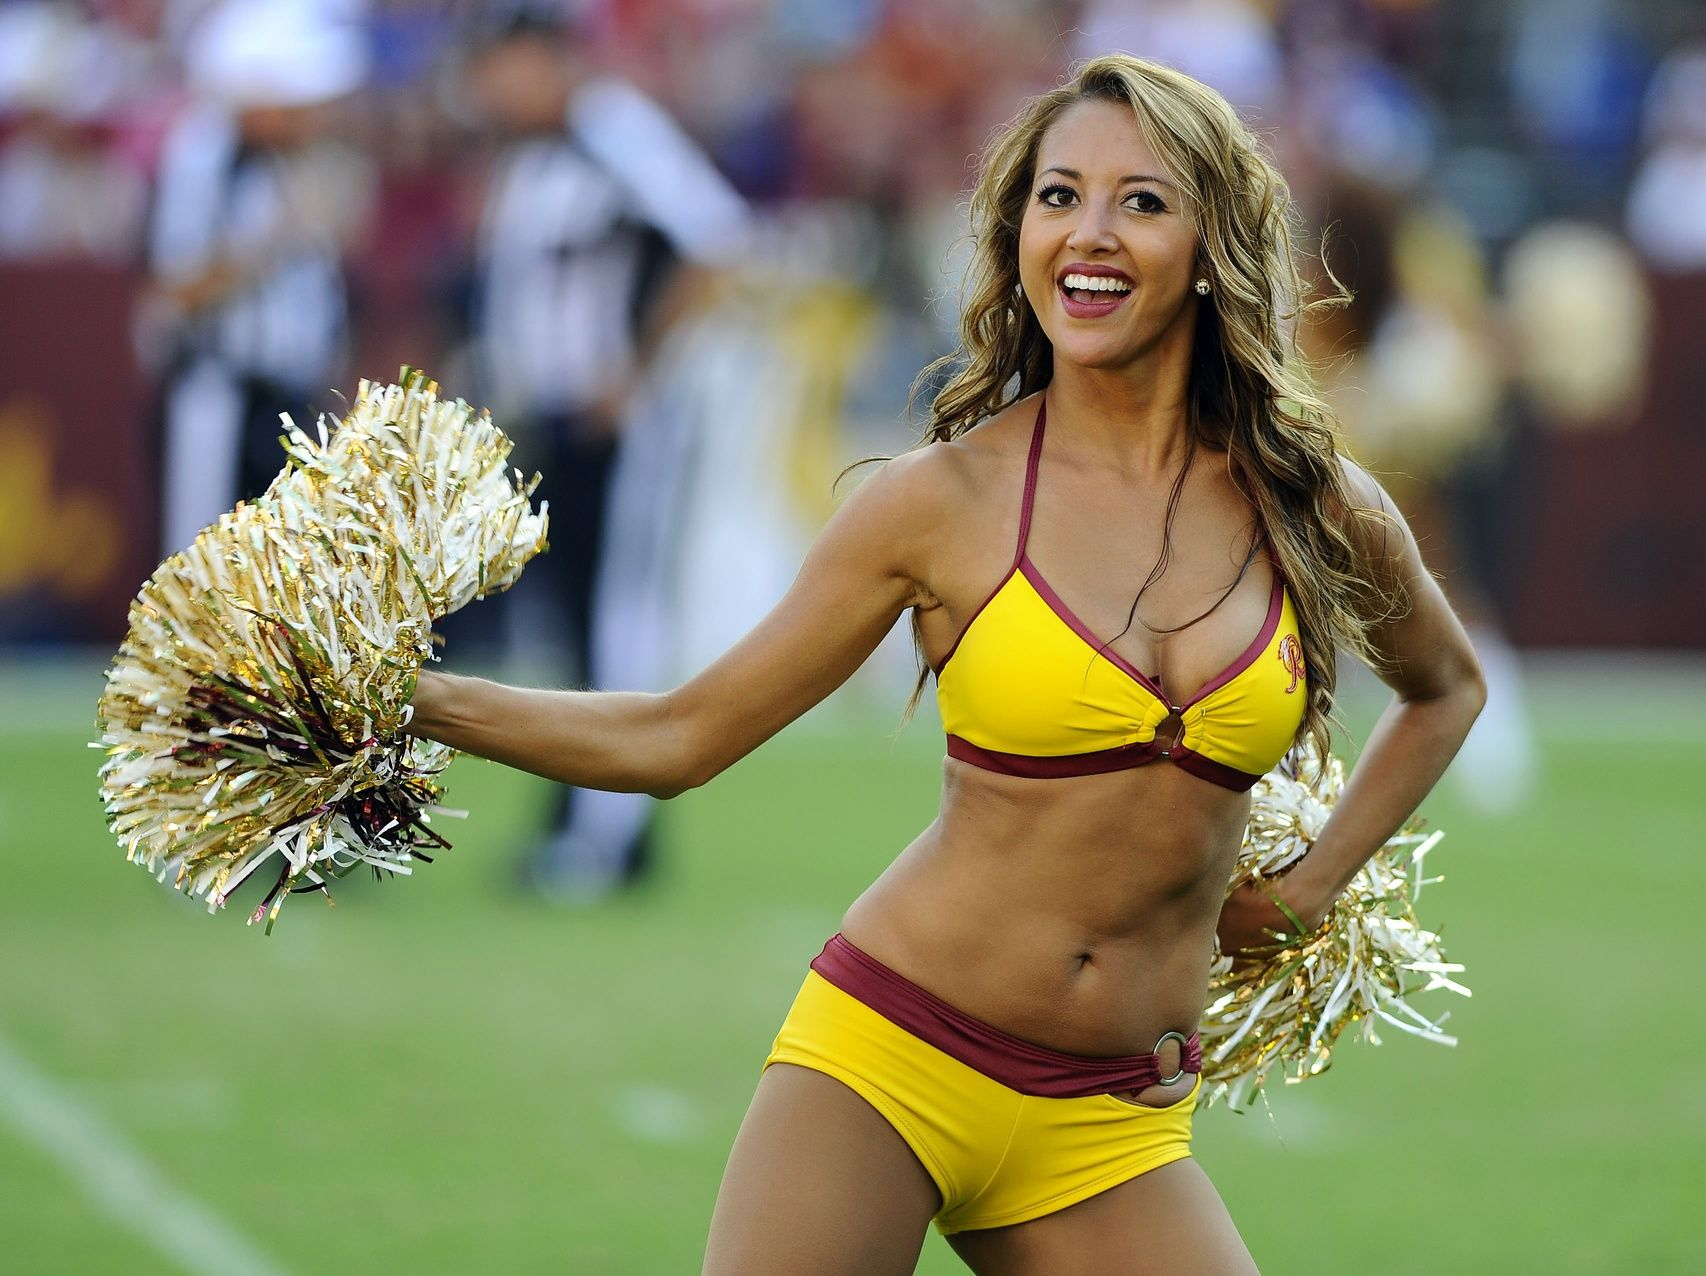 Hottest Nfl Cheerleaders Nude  New Girl Wallpaper-9220